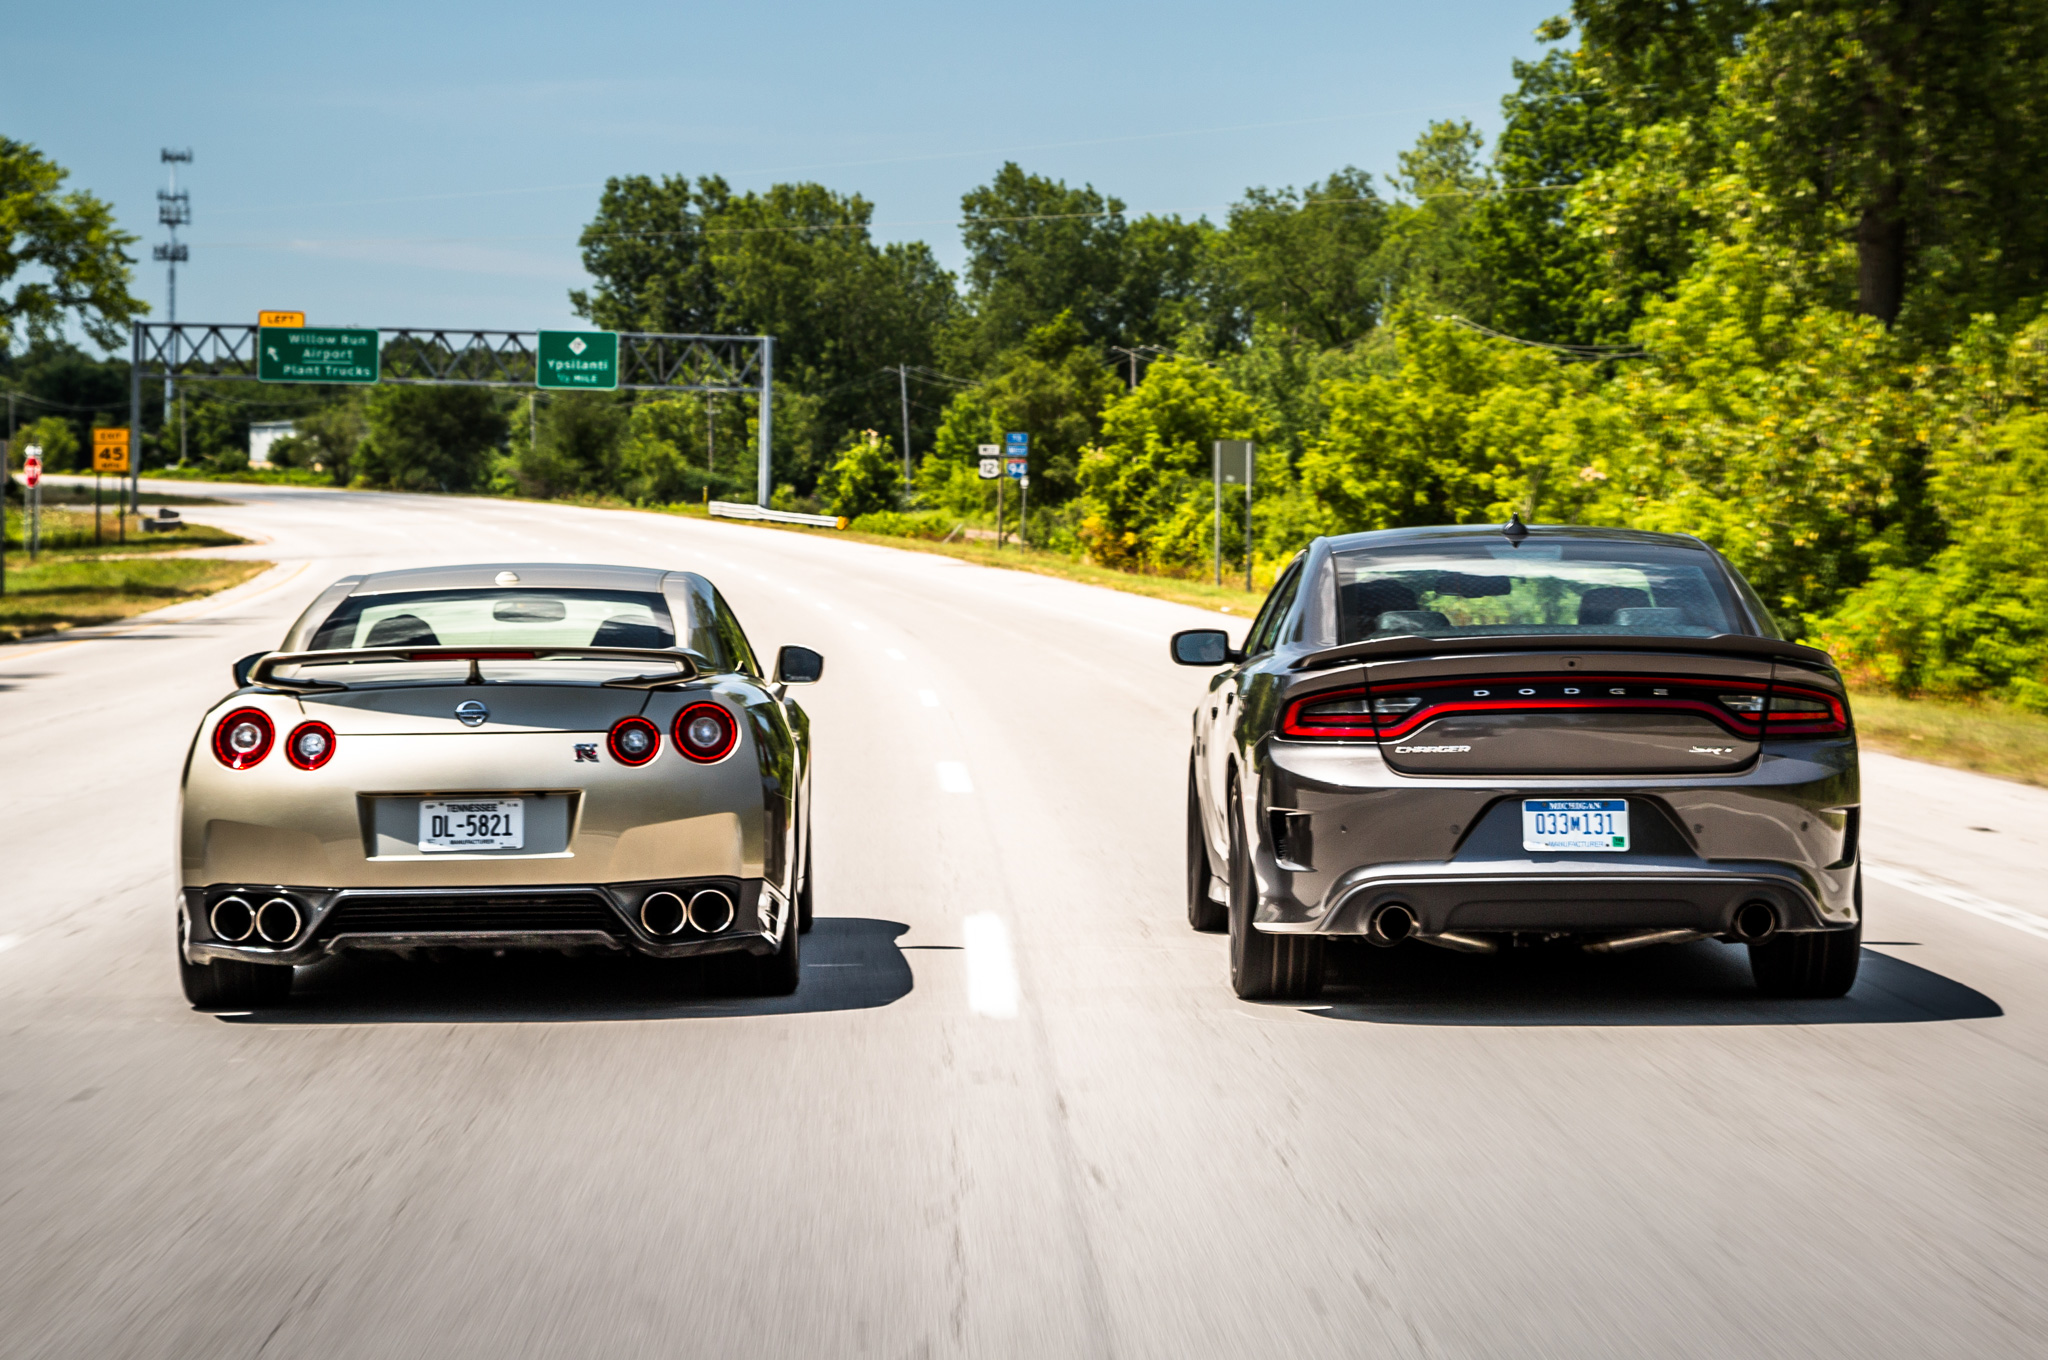 Flavors of fast 2015 dodge charger hellcat vs 2016 nissan gt r